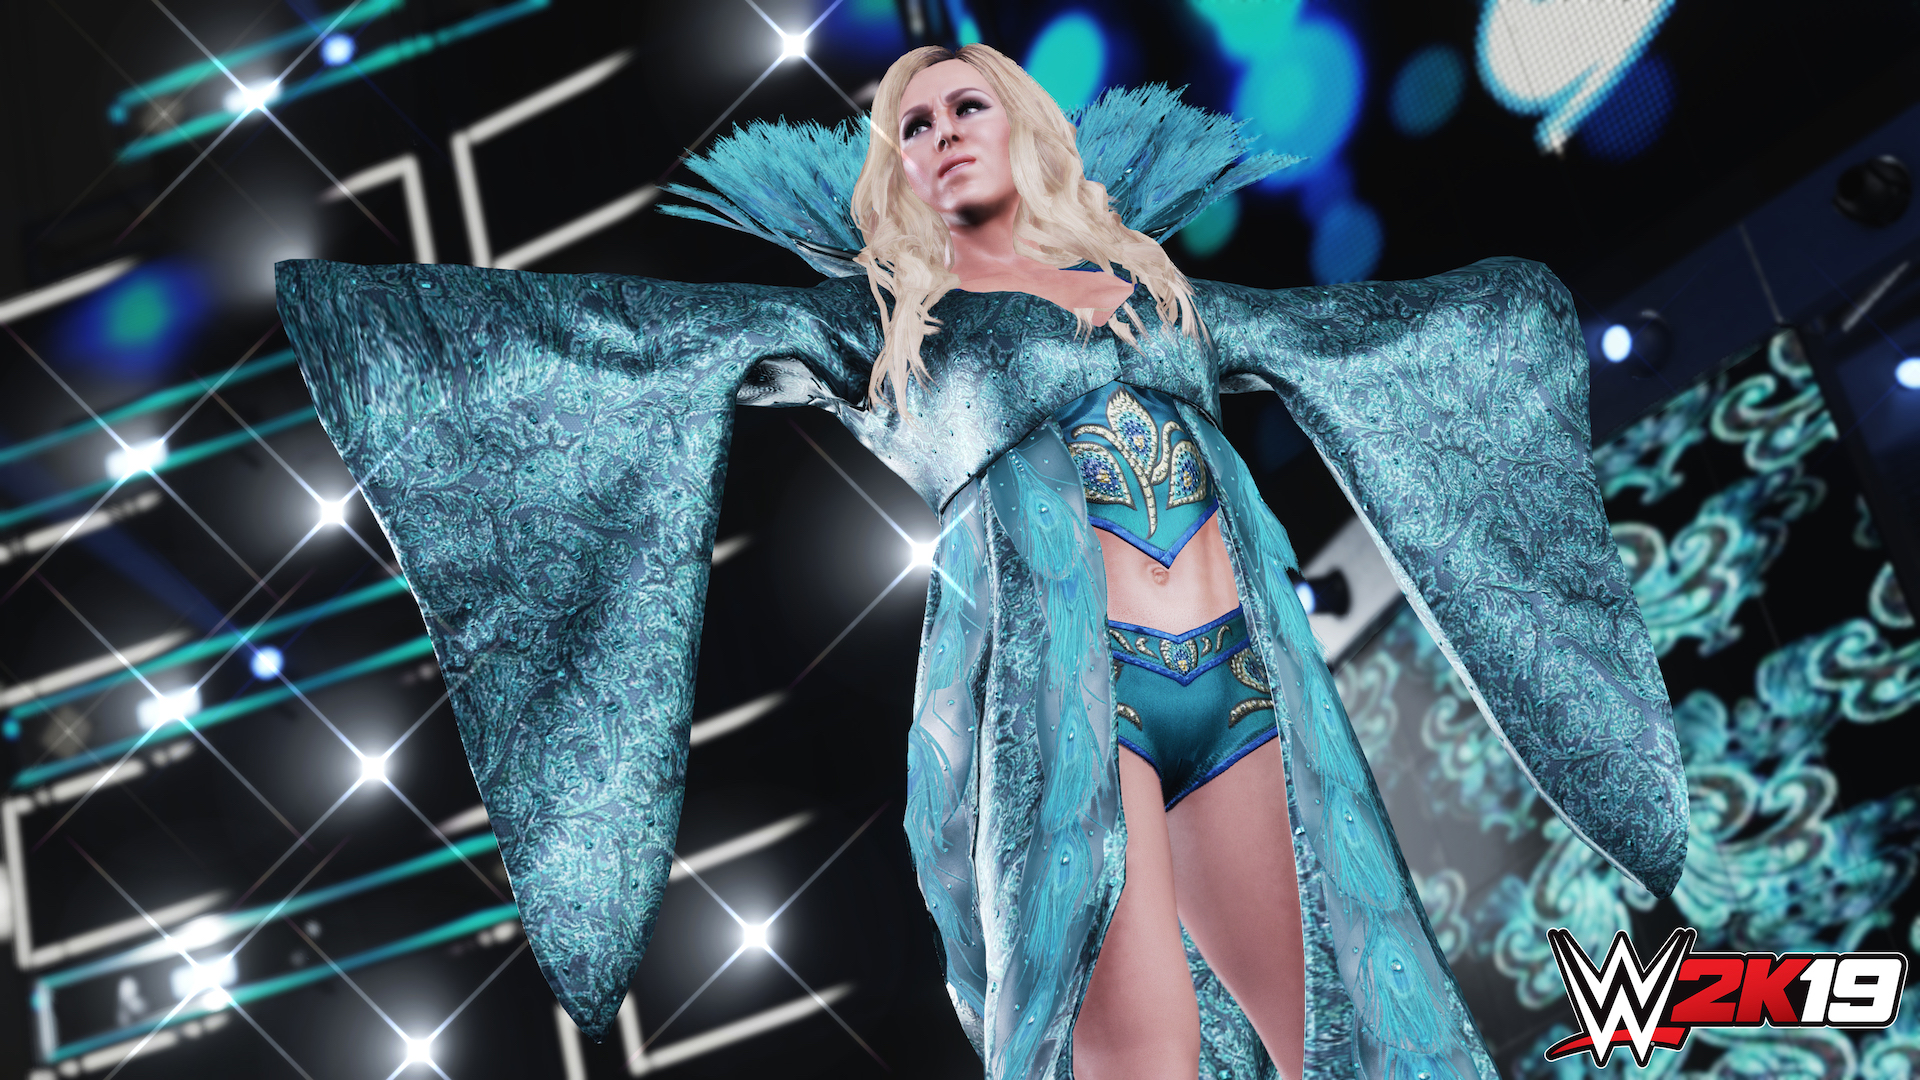 Charlotte Flair wwe 2K19